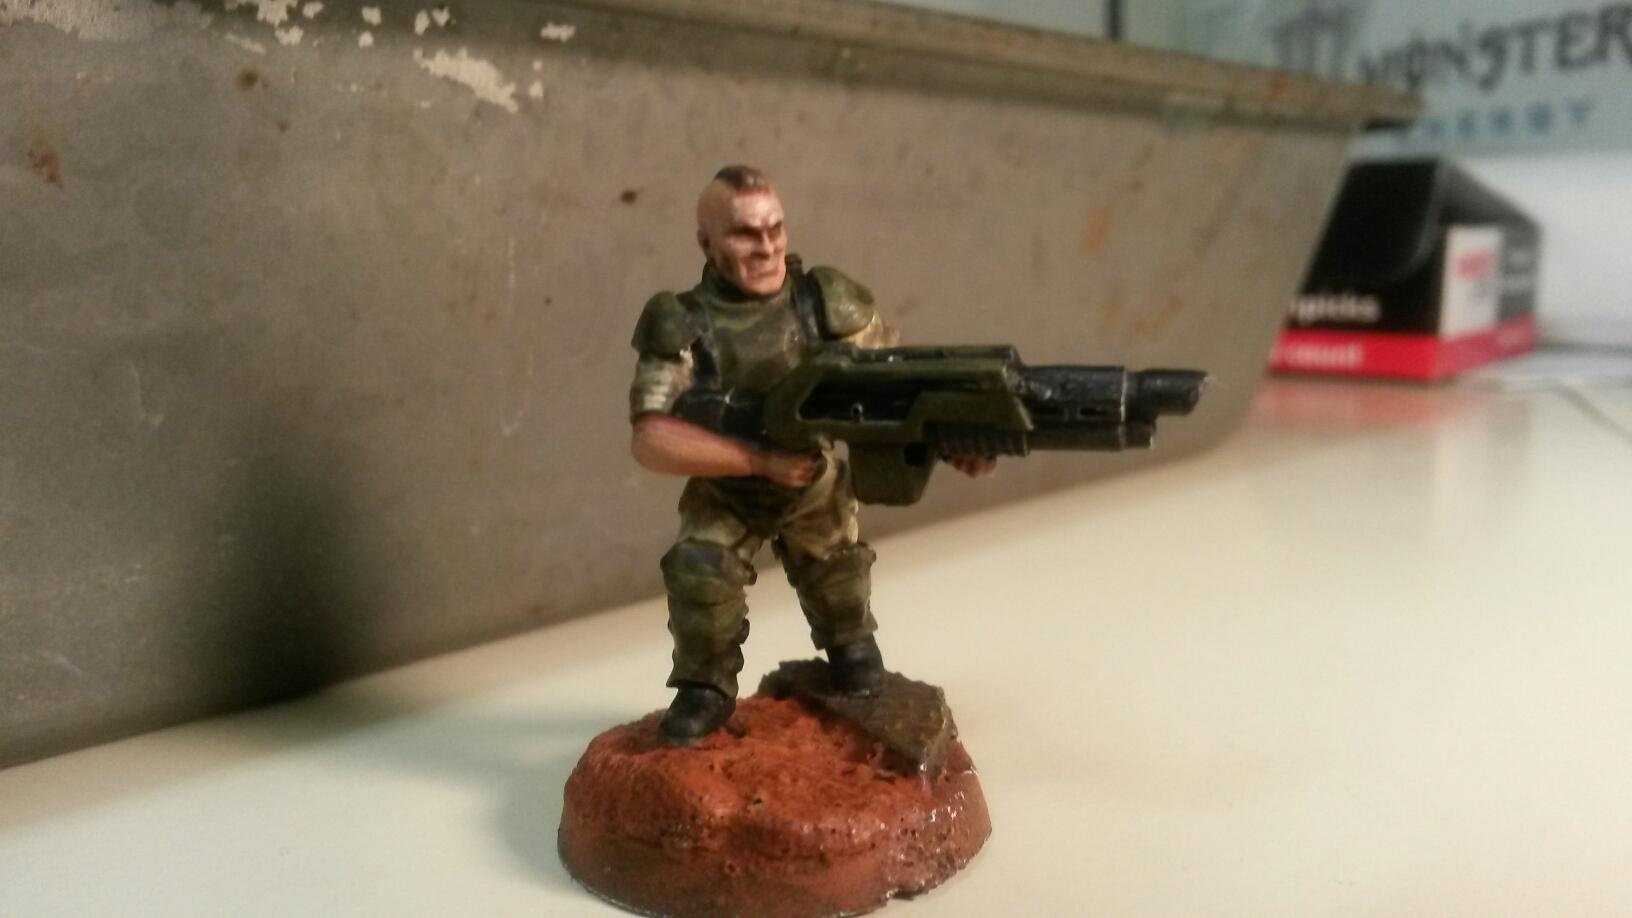 Aliens, Astra, Colonial, Desert, Forge World, Guard, Imperial, Industrial, Kill, Mad, Manufactorum, Mars, Militarum, Planet, Red, Robot, Space Marines, Team